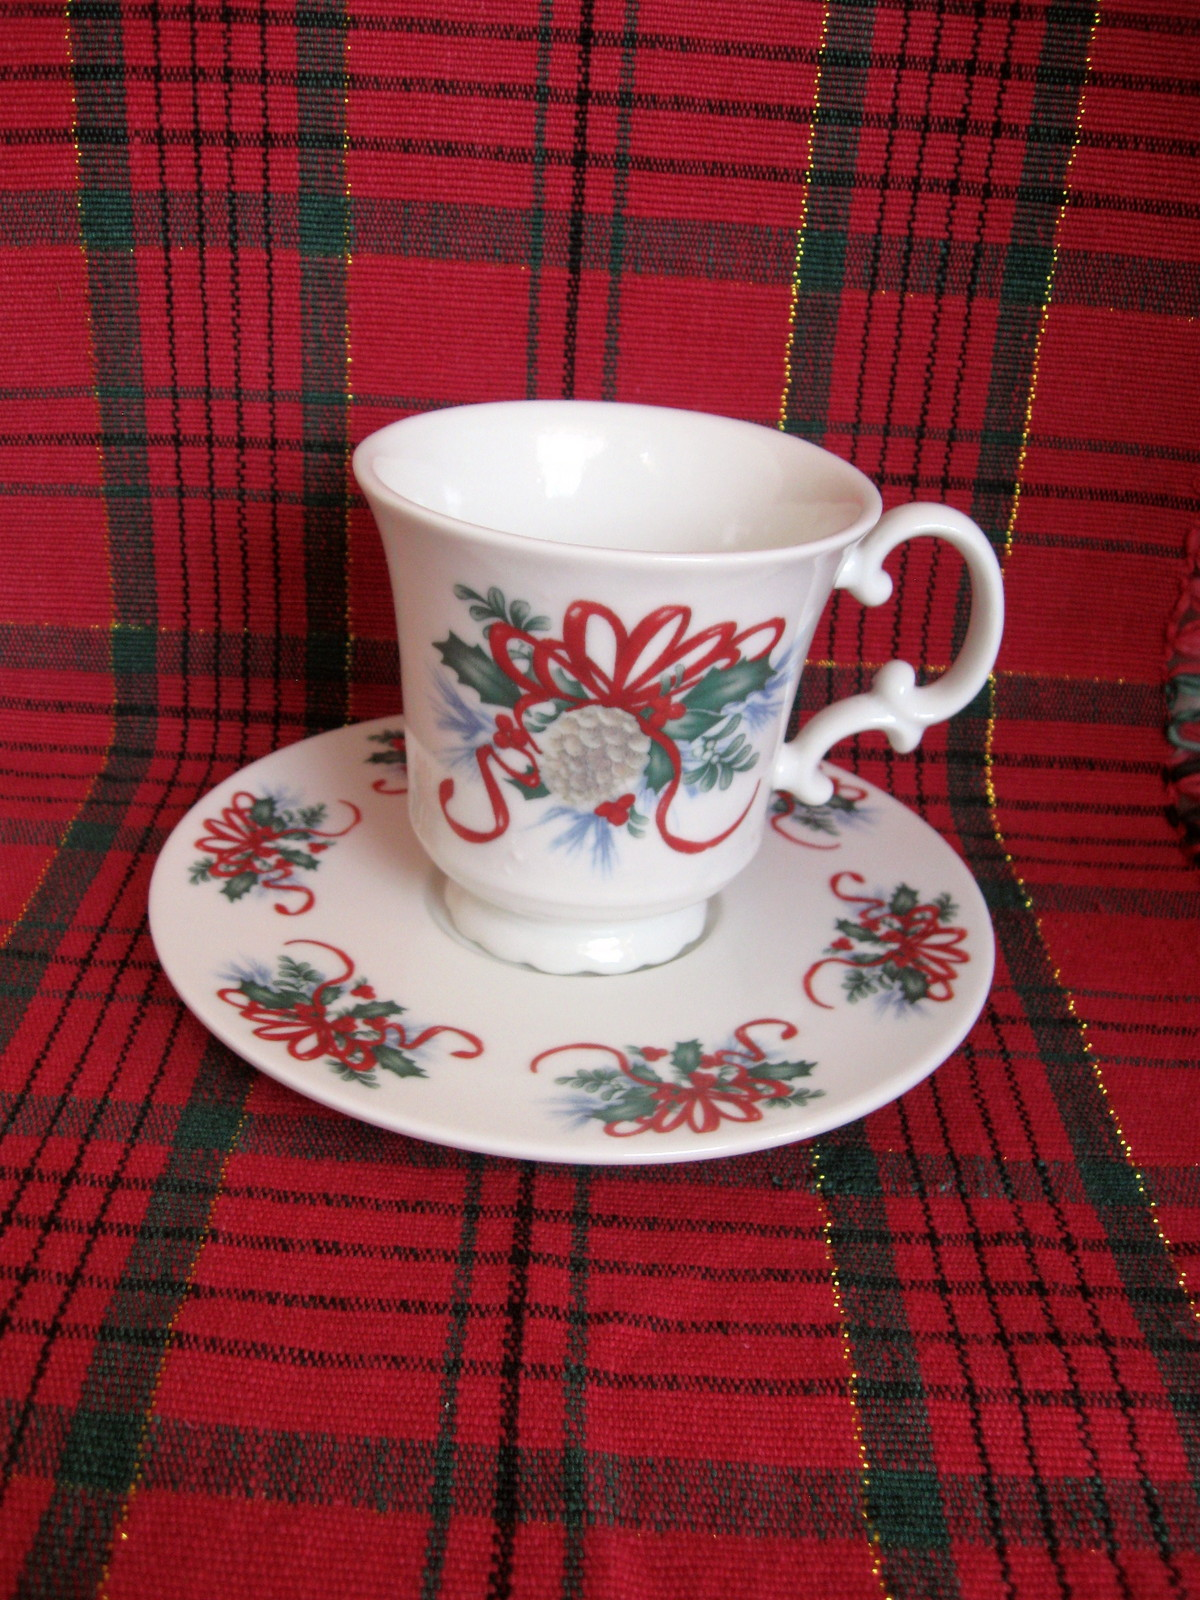 Primary image for Christmas Holly and Ribbon Cup and Saucer Sets - Six (6) Available